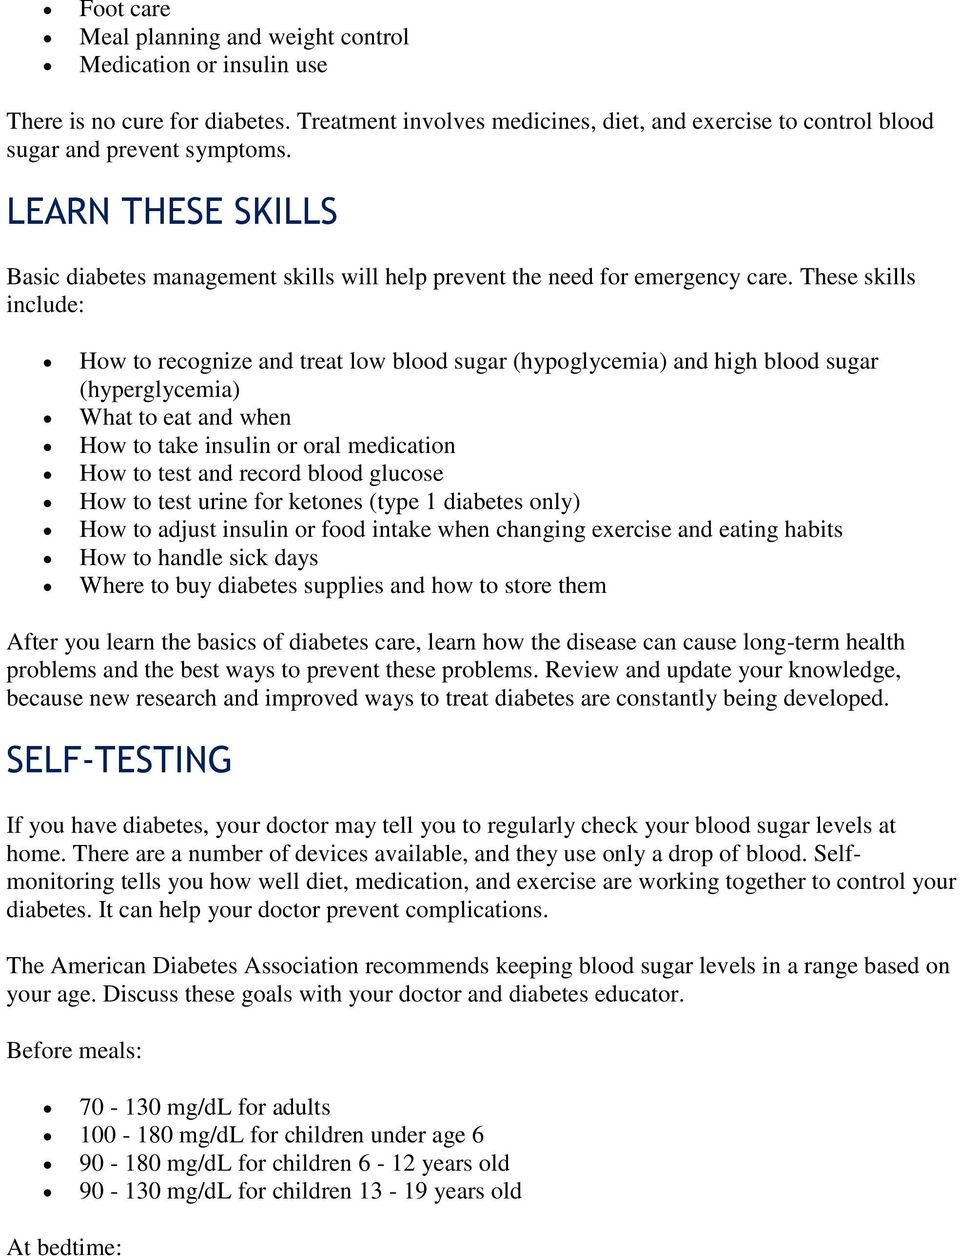 These skills include: How to recognize and treat low blood sugar (hypoglycemia) and high blood sugar (hyperglycemia) What to eat and when How to take insulin or oral medication How to test and record